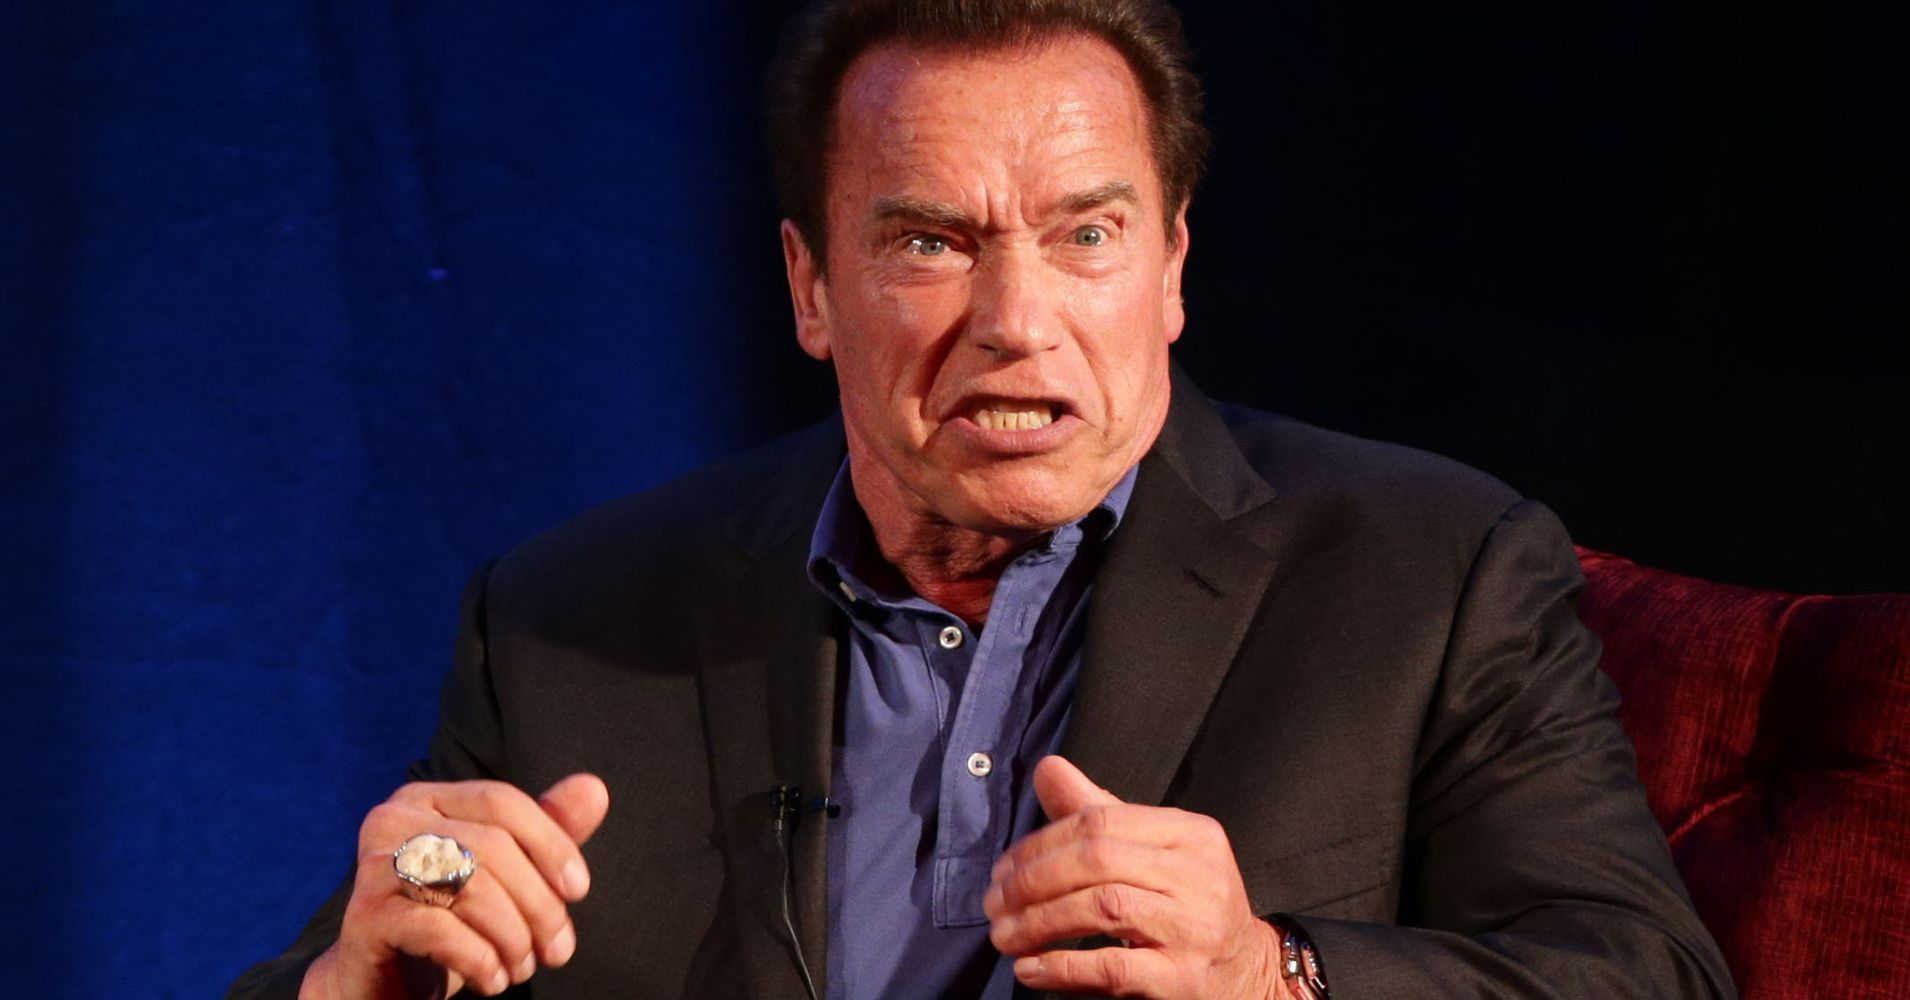 Arnold Schwarzenegger Tears Into Donald Trump Over Paris Climate Deal Withdrawal